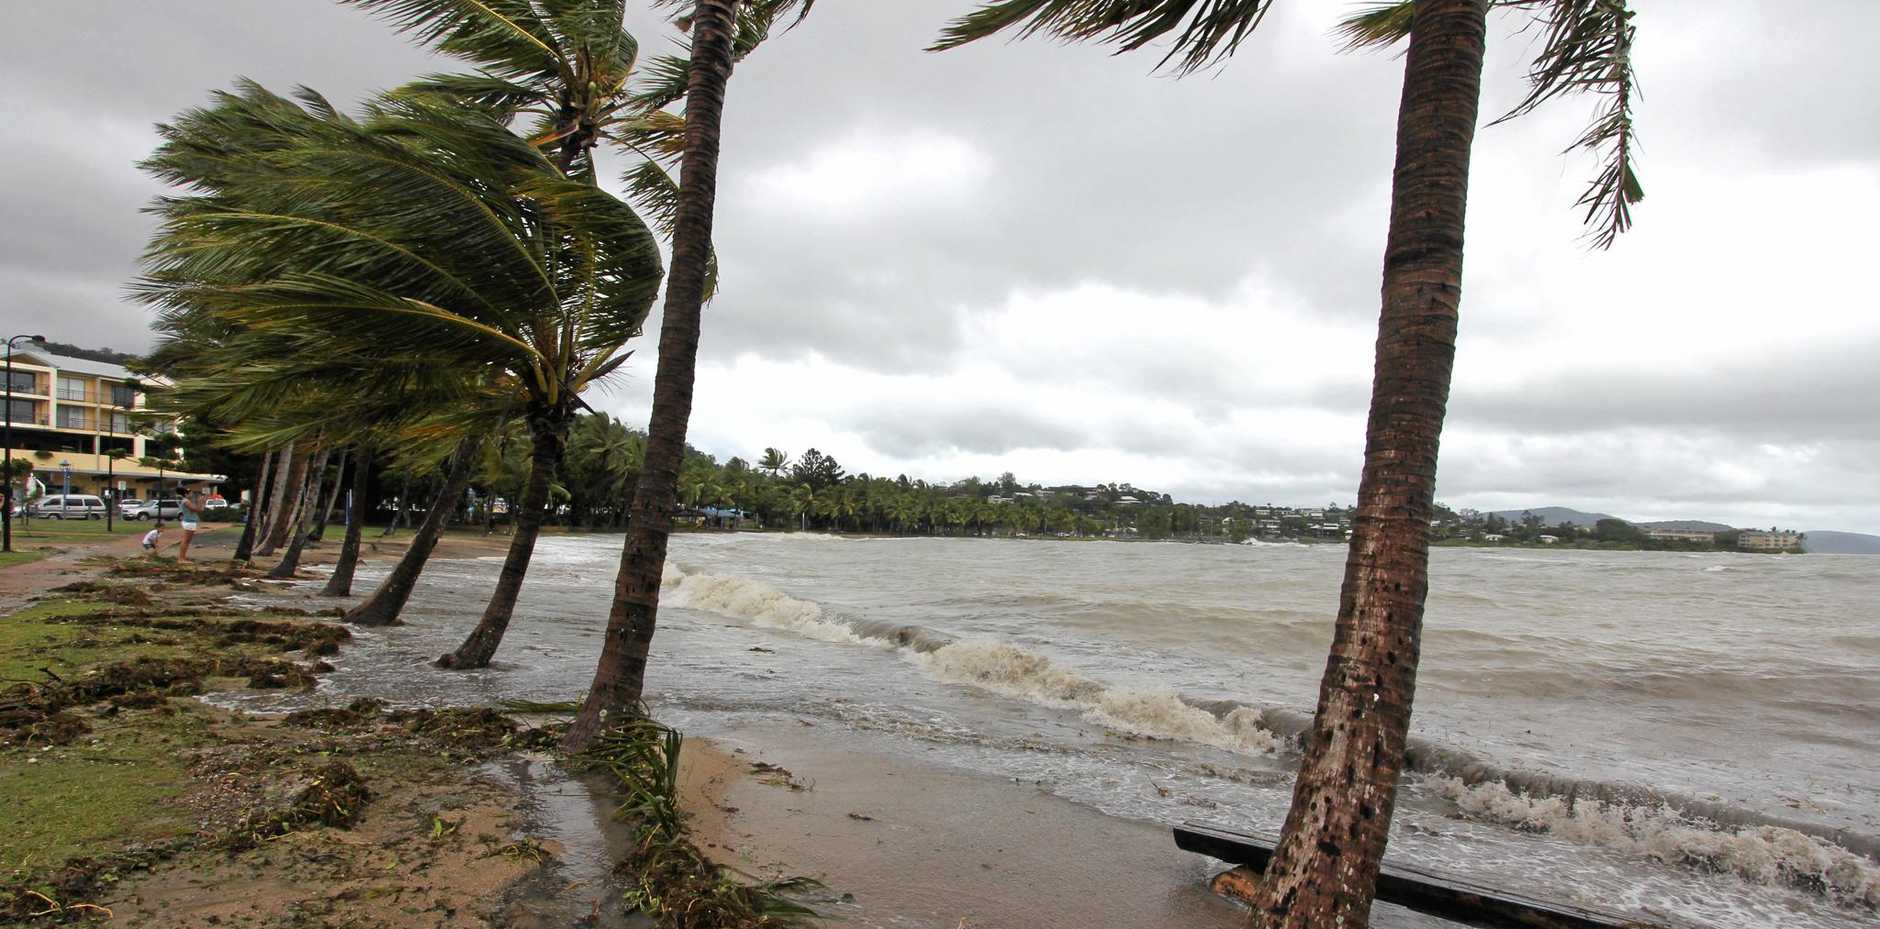 BLUSTERY: A wind-swept Airlie Beach after the Tropical Cyclone Dylan hit in 2014.